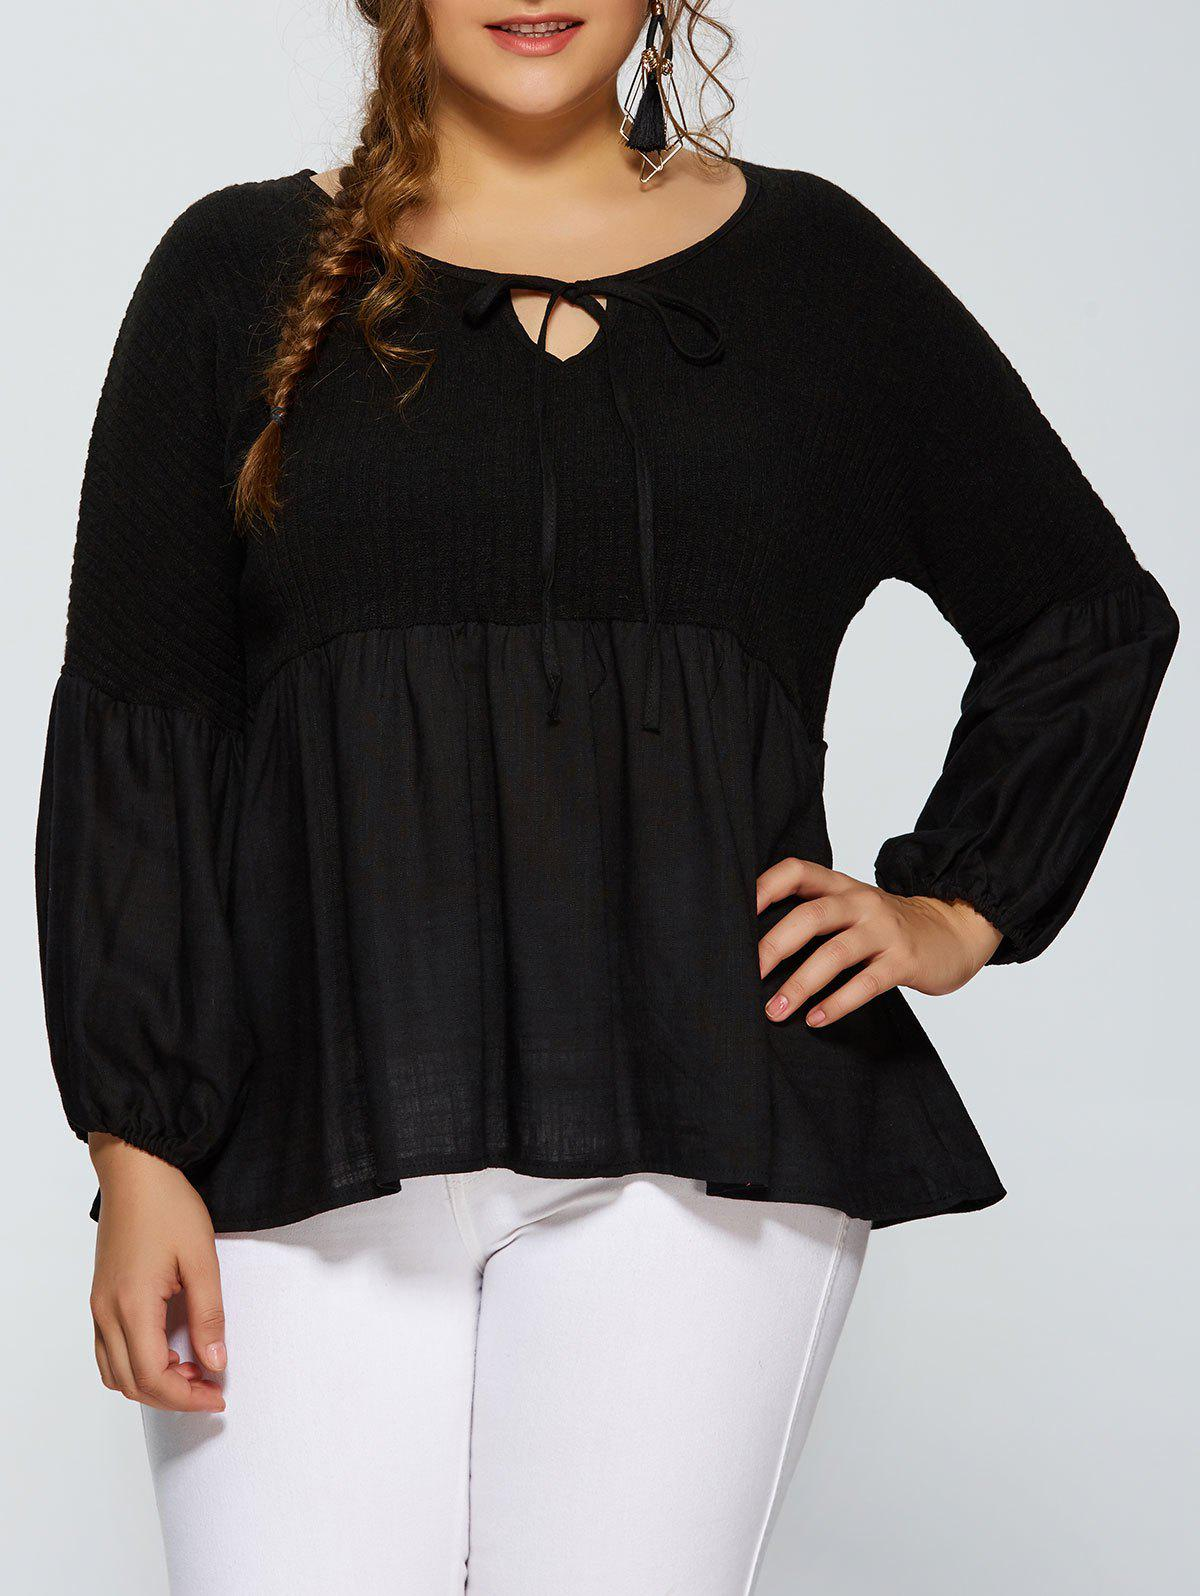 Affordable Puff Sleeve Knitted Insert Blouse